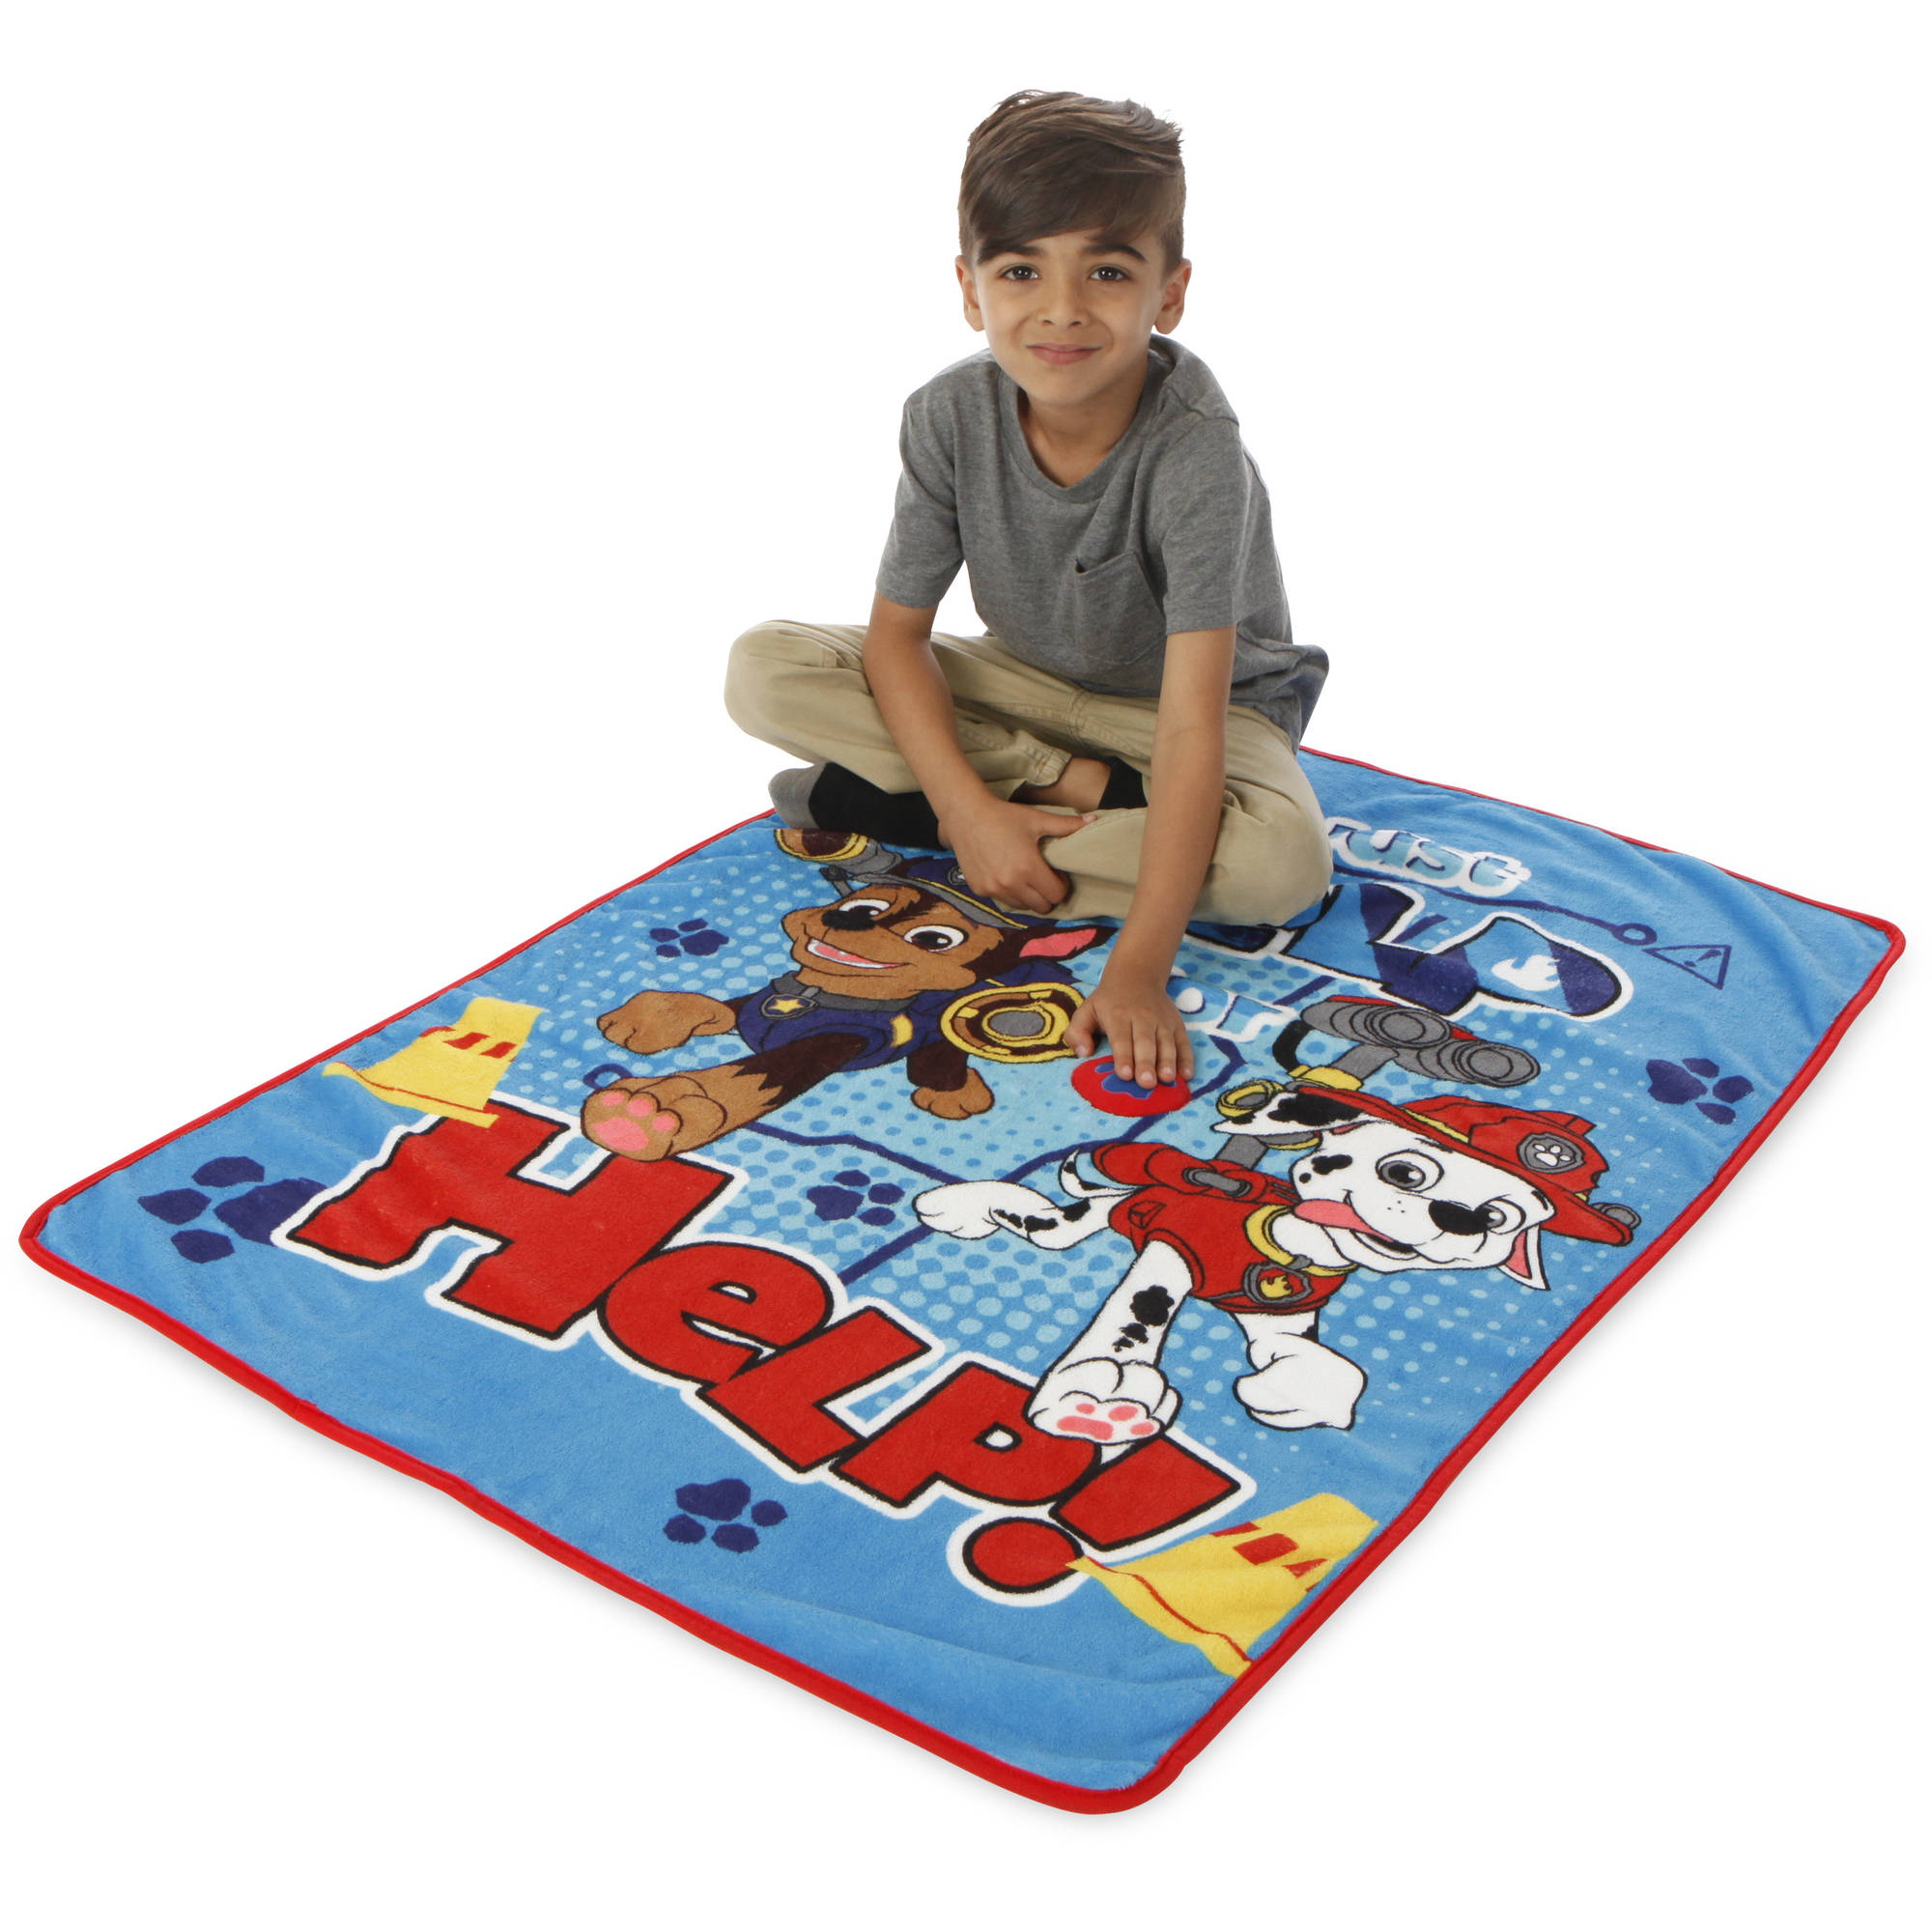 Paw Patrol Toddler Blanket with Sound